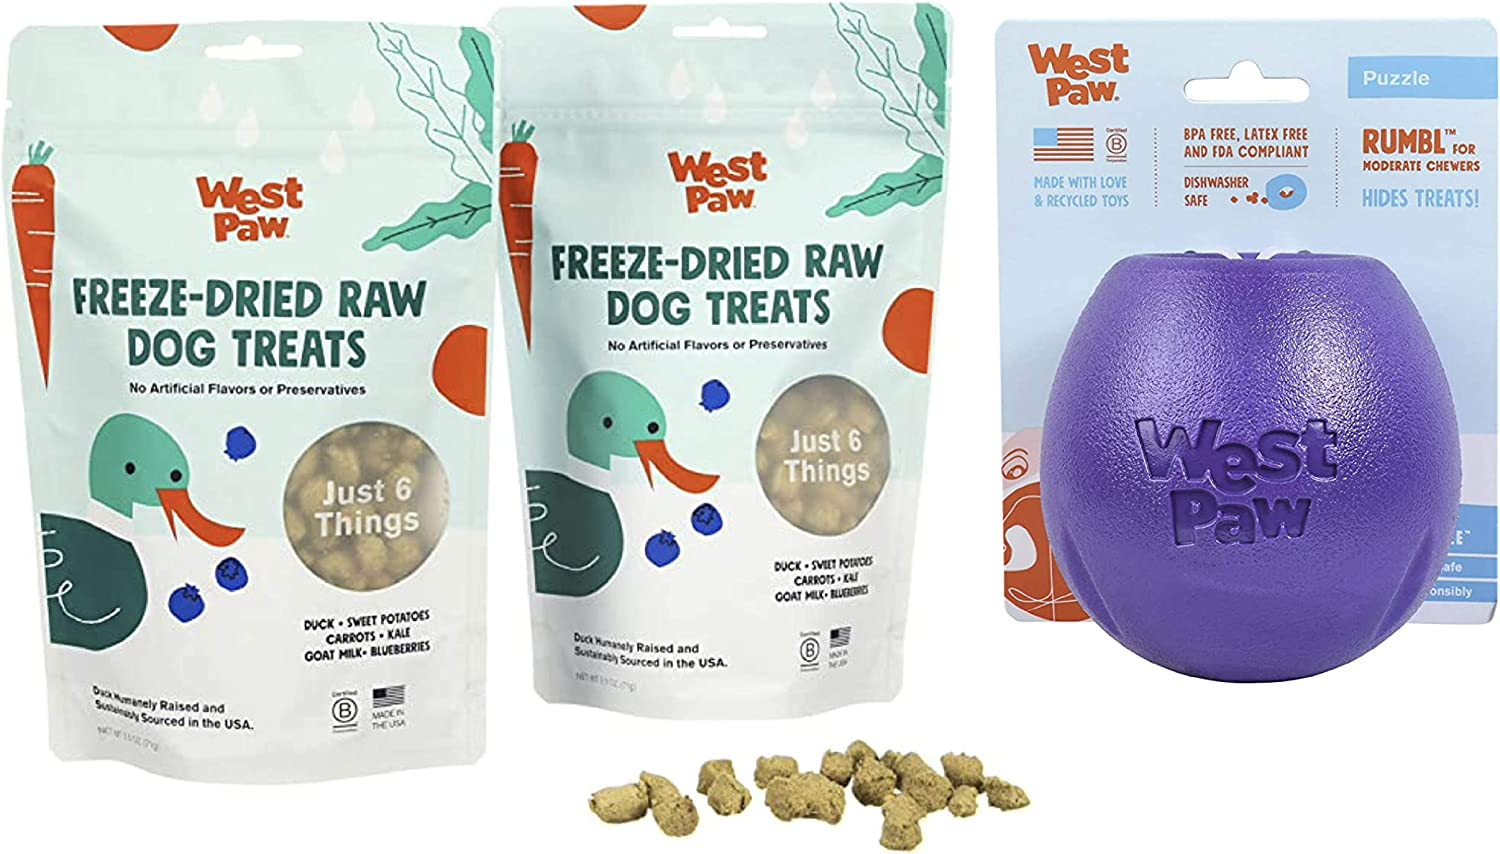 West Paw Duck Superfood Freeze-Dried Raw Dog Treats, 100% Grass Fed (2-Pack) & Zogoflex Rumbl Treat-Dispensing Dog Toy for Moderate Chewers, Fetch, Catch – Holds Kibble, Treats (Eggplant, Large)